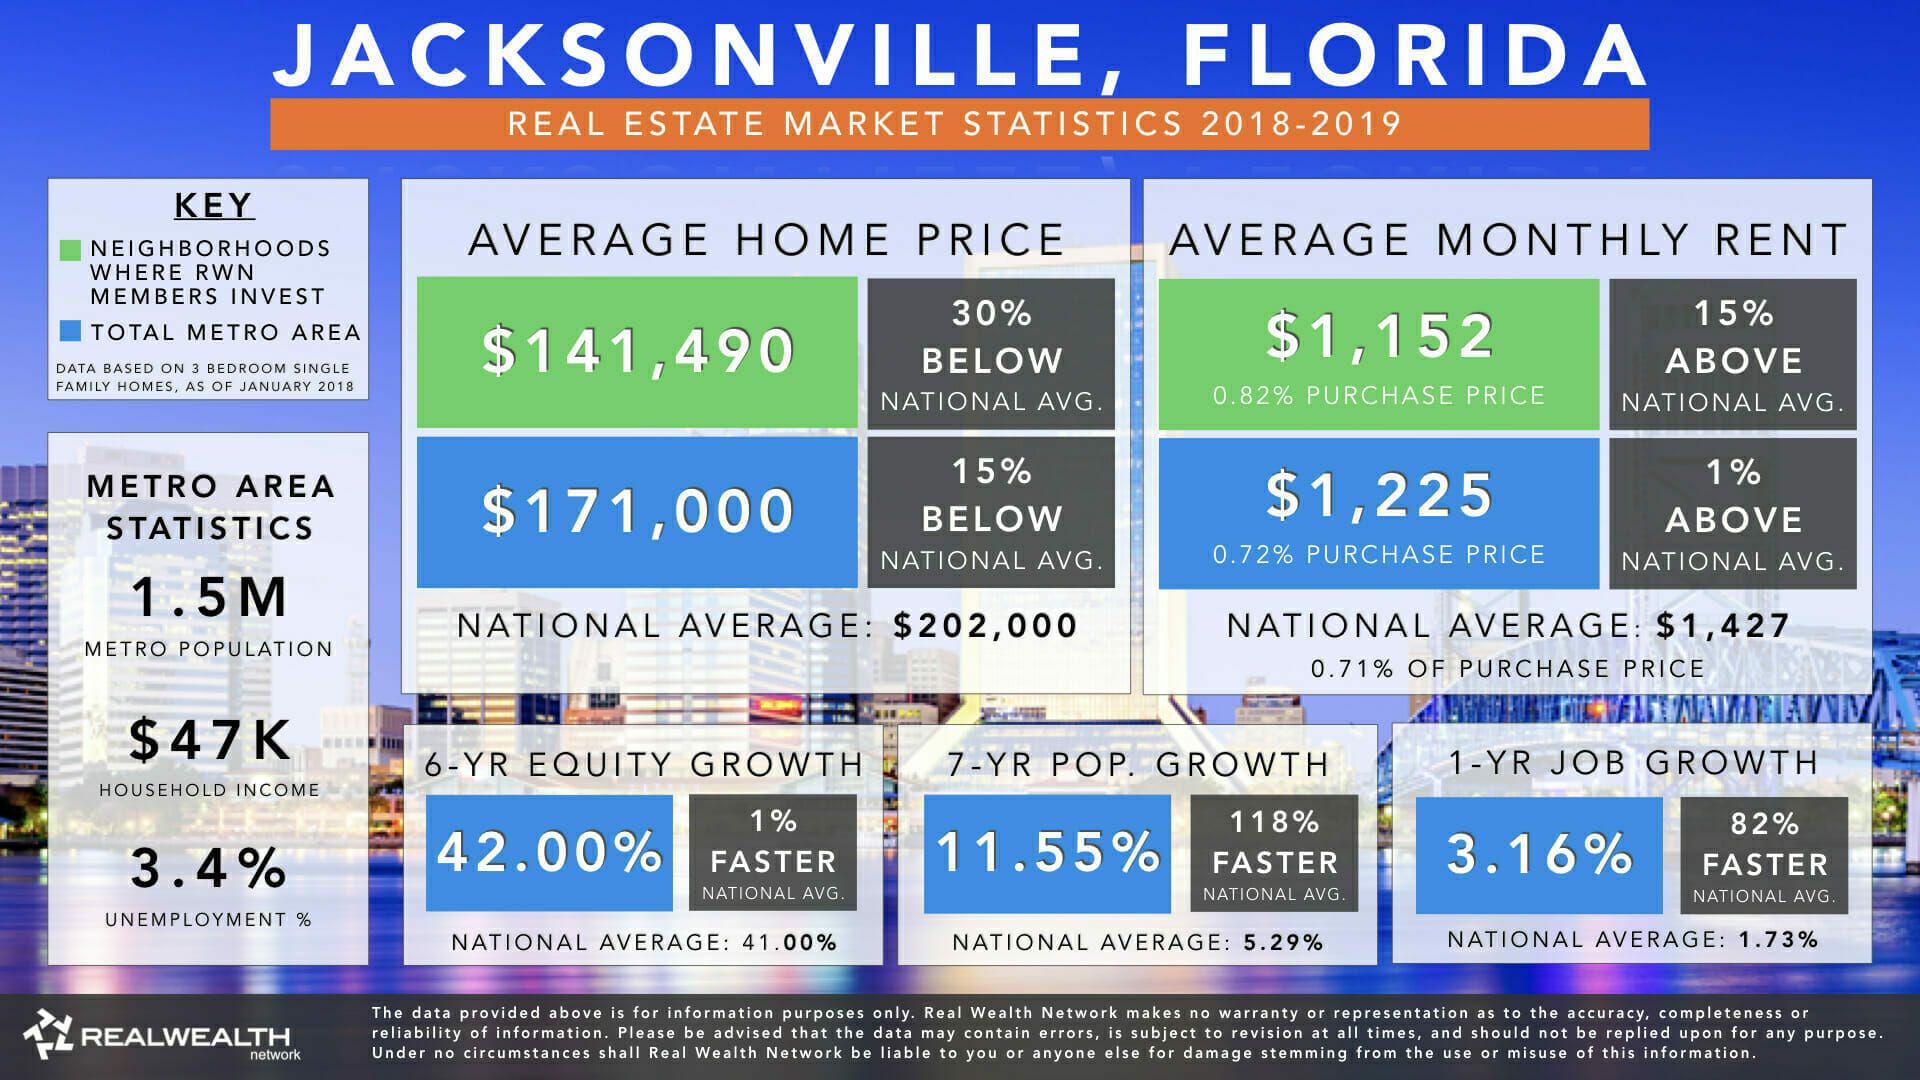 Jacksonville, Florida | Real Estate Market Statistics & Trends 2019